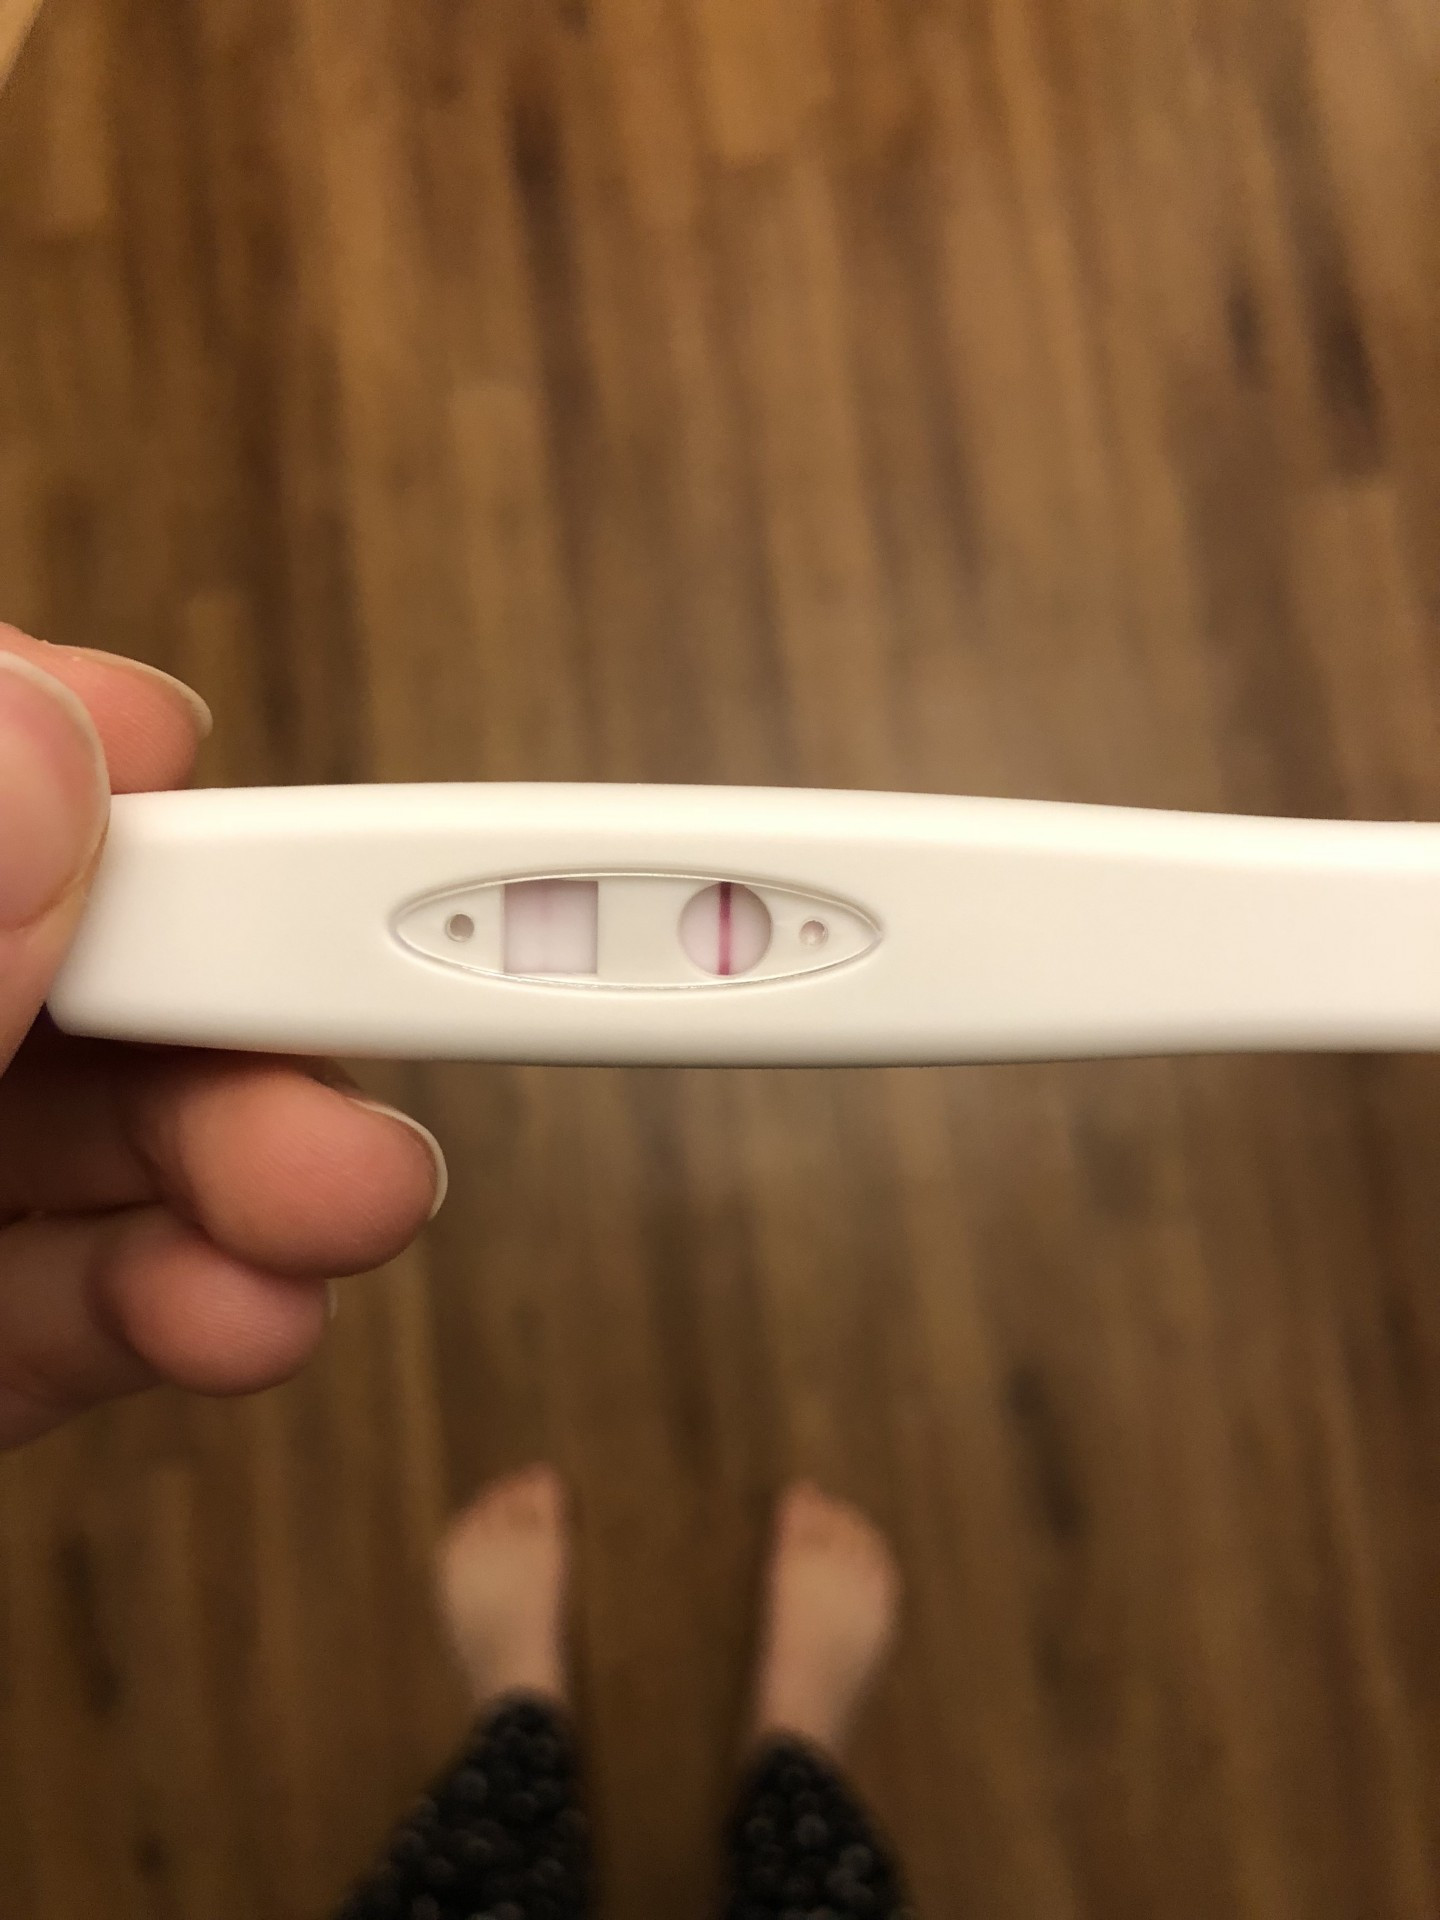 the brookfield lining raising the rings pregnancy test not sure if negative or positive how can I tell